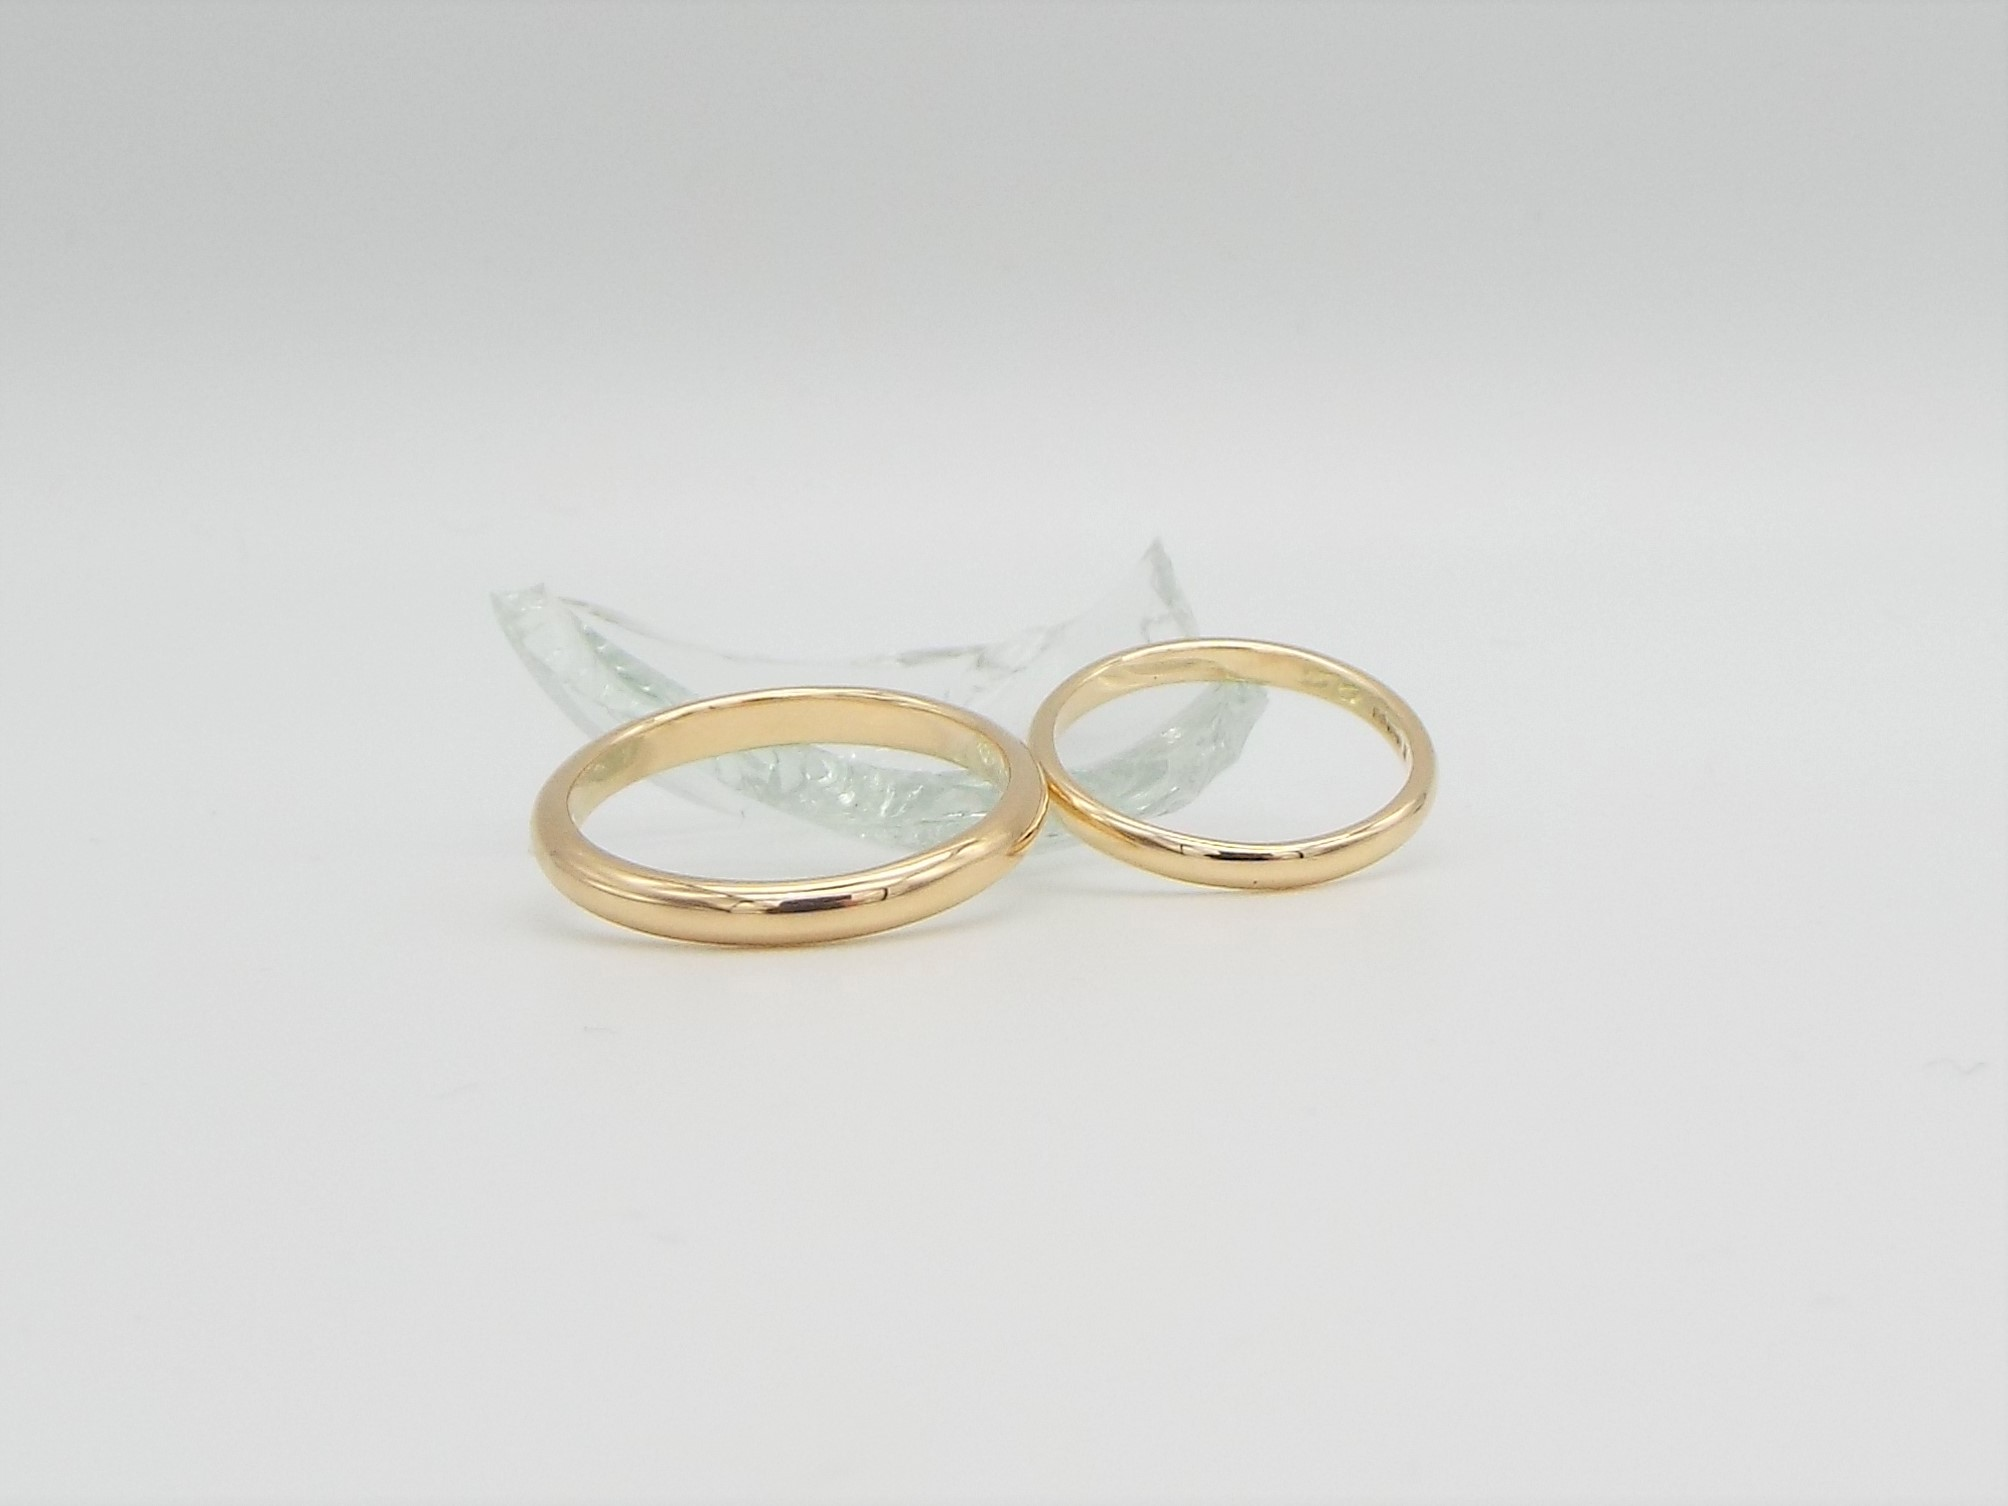 His and Hers Gold Wedding Ring Set - Smooth Polished finish